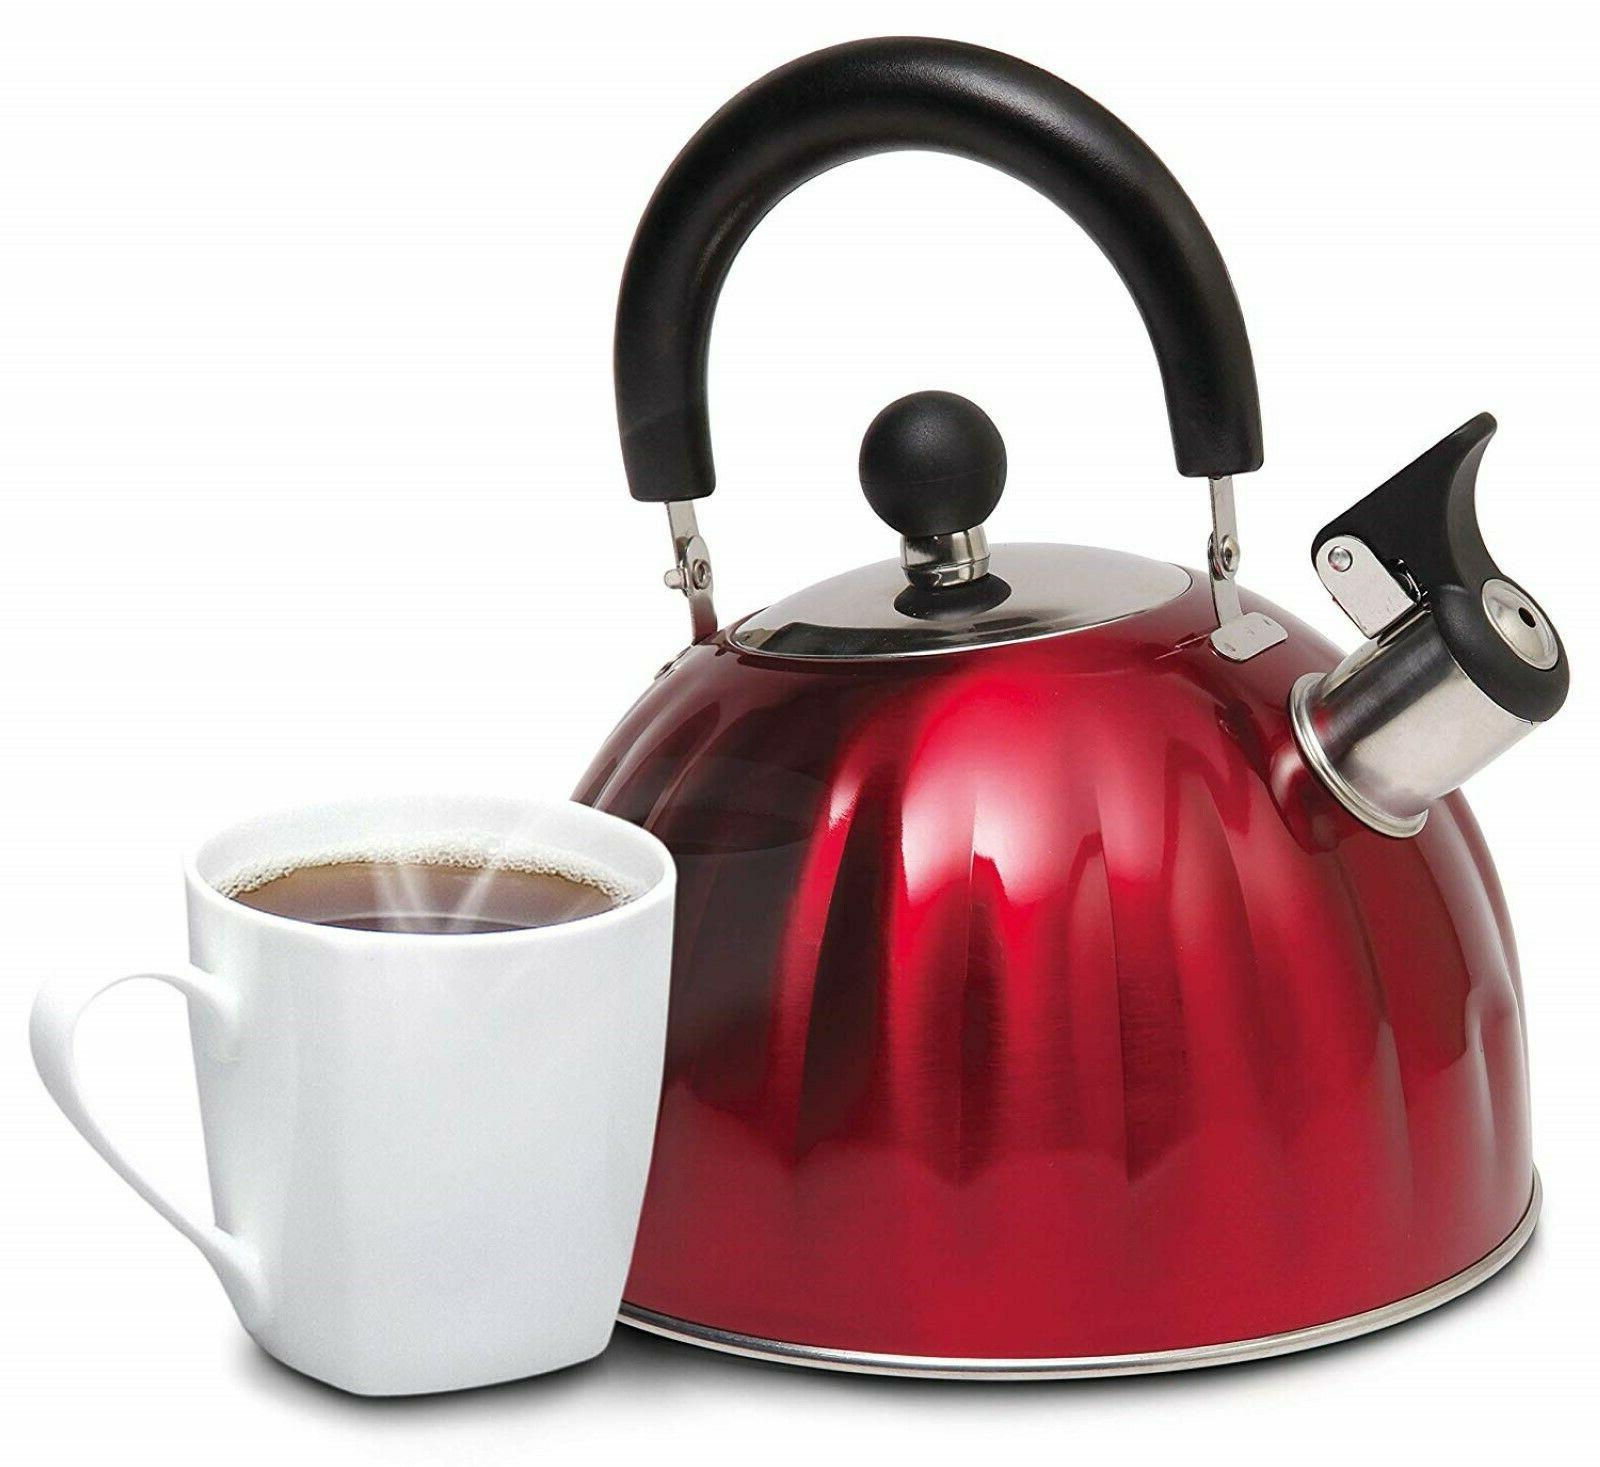 Stainless Steel Whistling Tea Kettle Twining Teapot Hot Wate